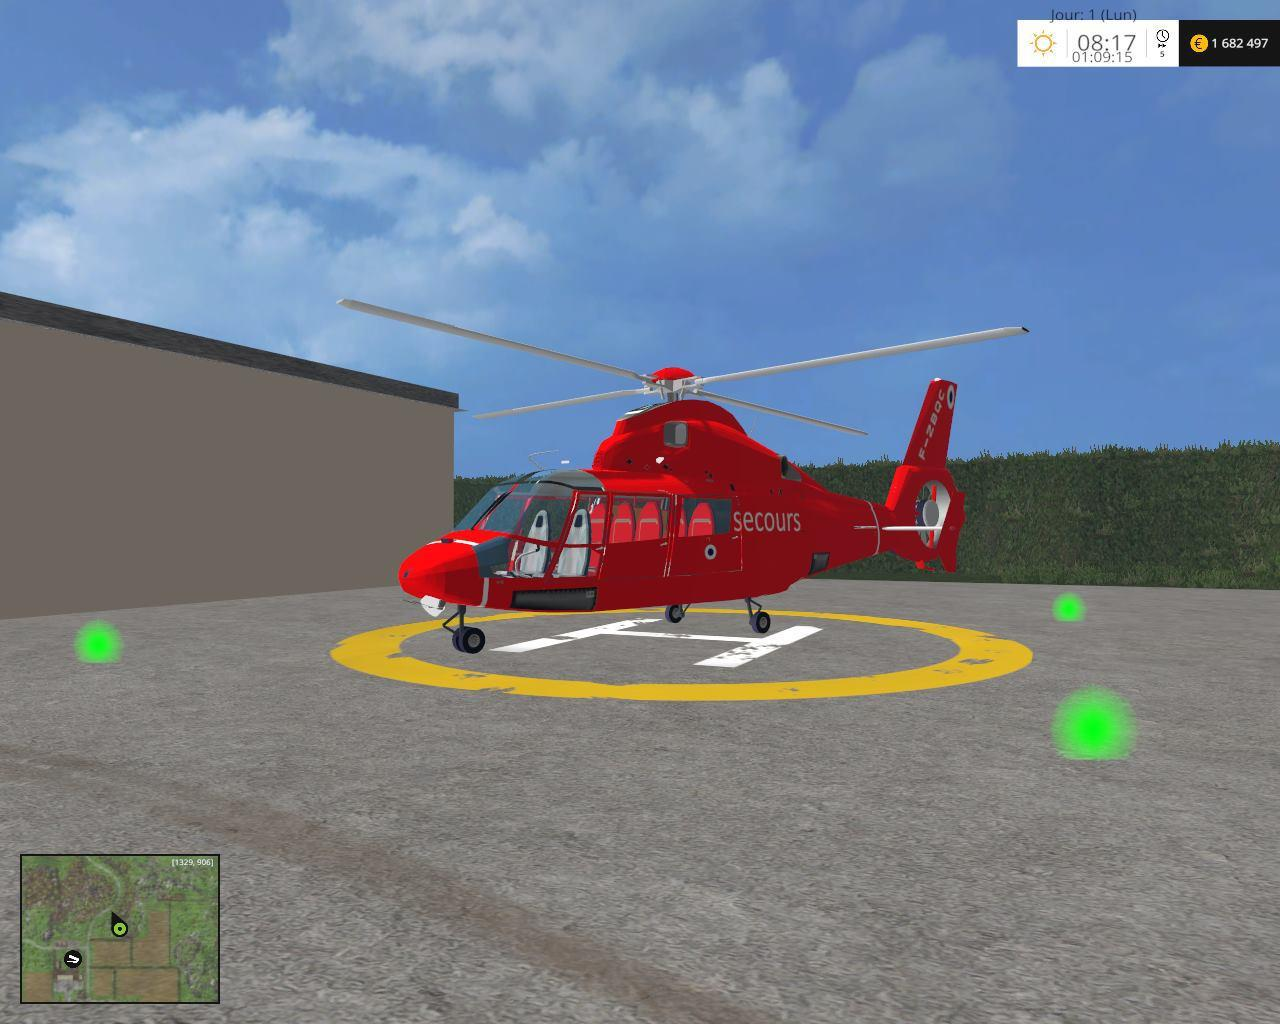 helicopter simulator 3d with 50028 Fire Departement Zorlac Caserne Tfsgroup on Bat Pool Endless Tunnel additionally 3d model atom likewise Antarctica furthermore 50028 Fire Departement Zorlac Caserne Tfsgroup besides 540.